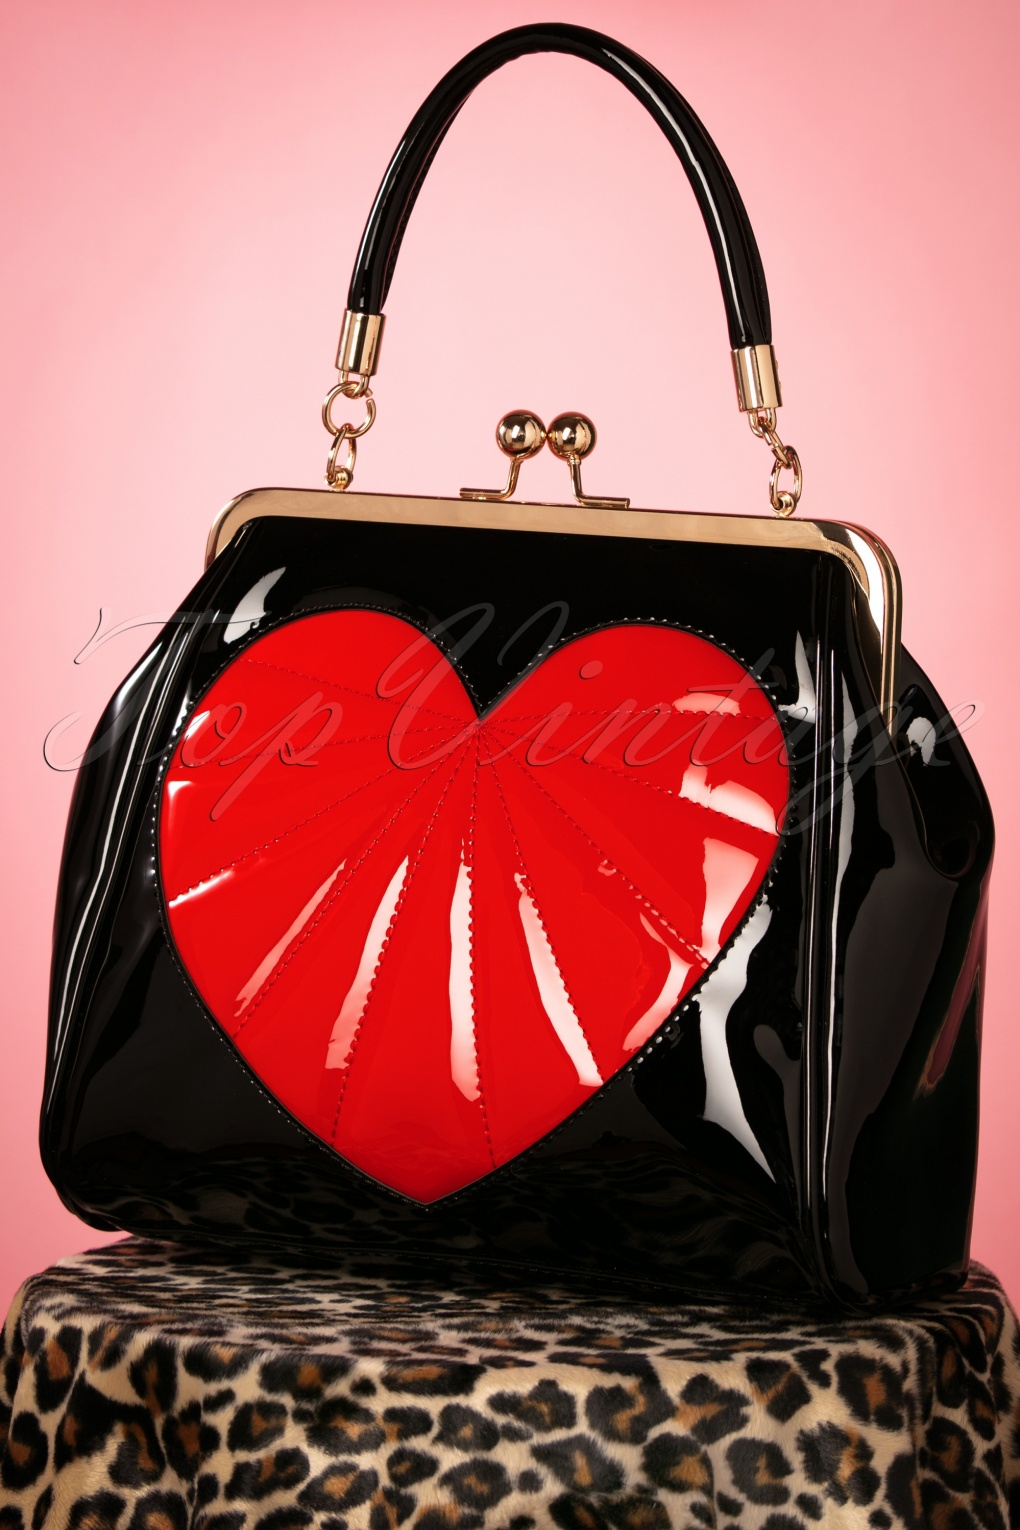 1950s Handbags, Purses, and Evening Bag Styles 50s Heartbreaker Bag in Black £37.93 AT vintagedancer.com